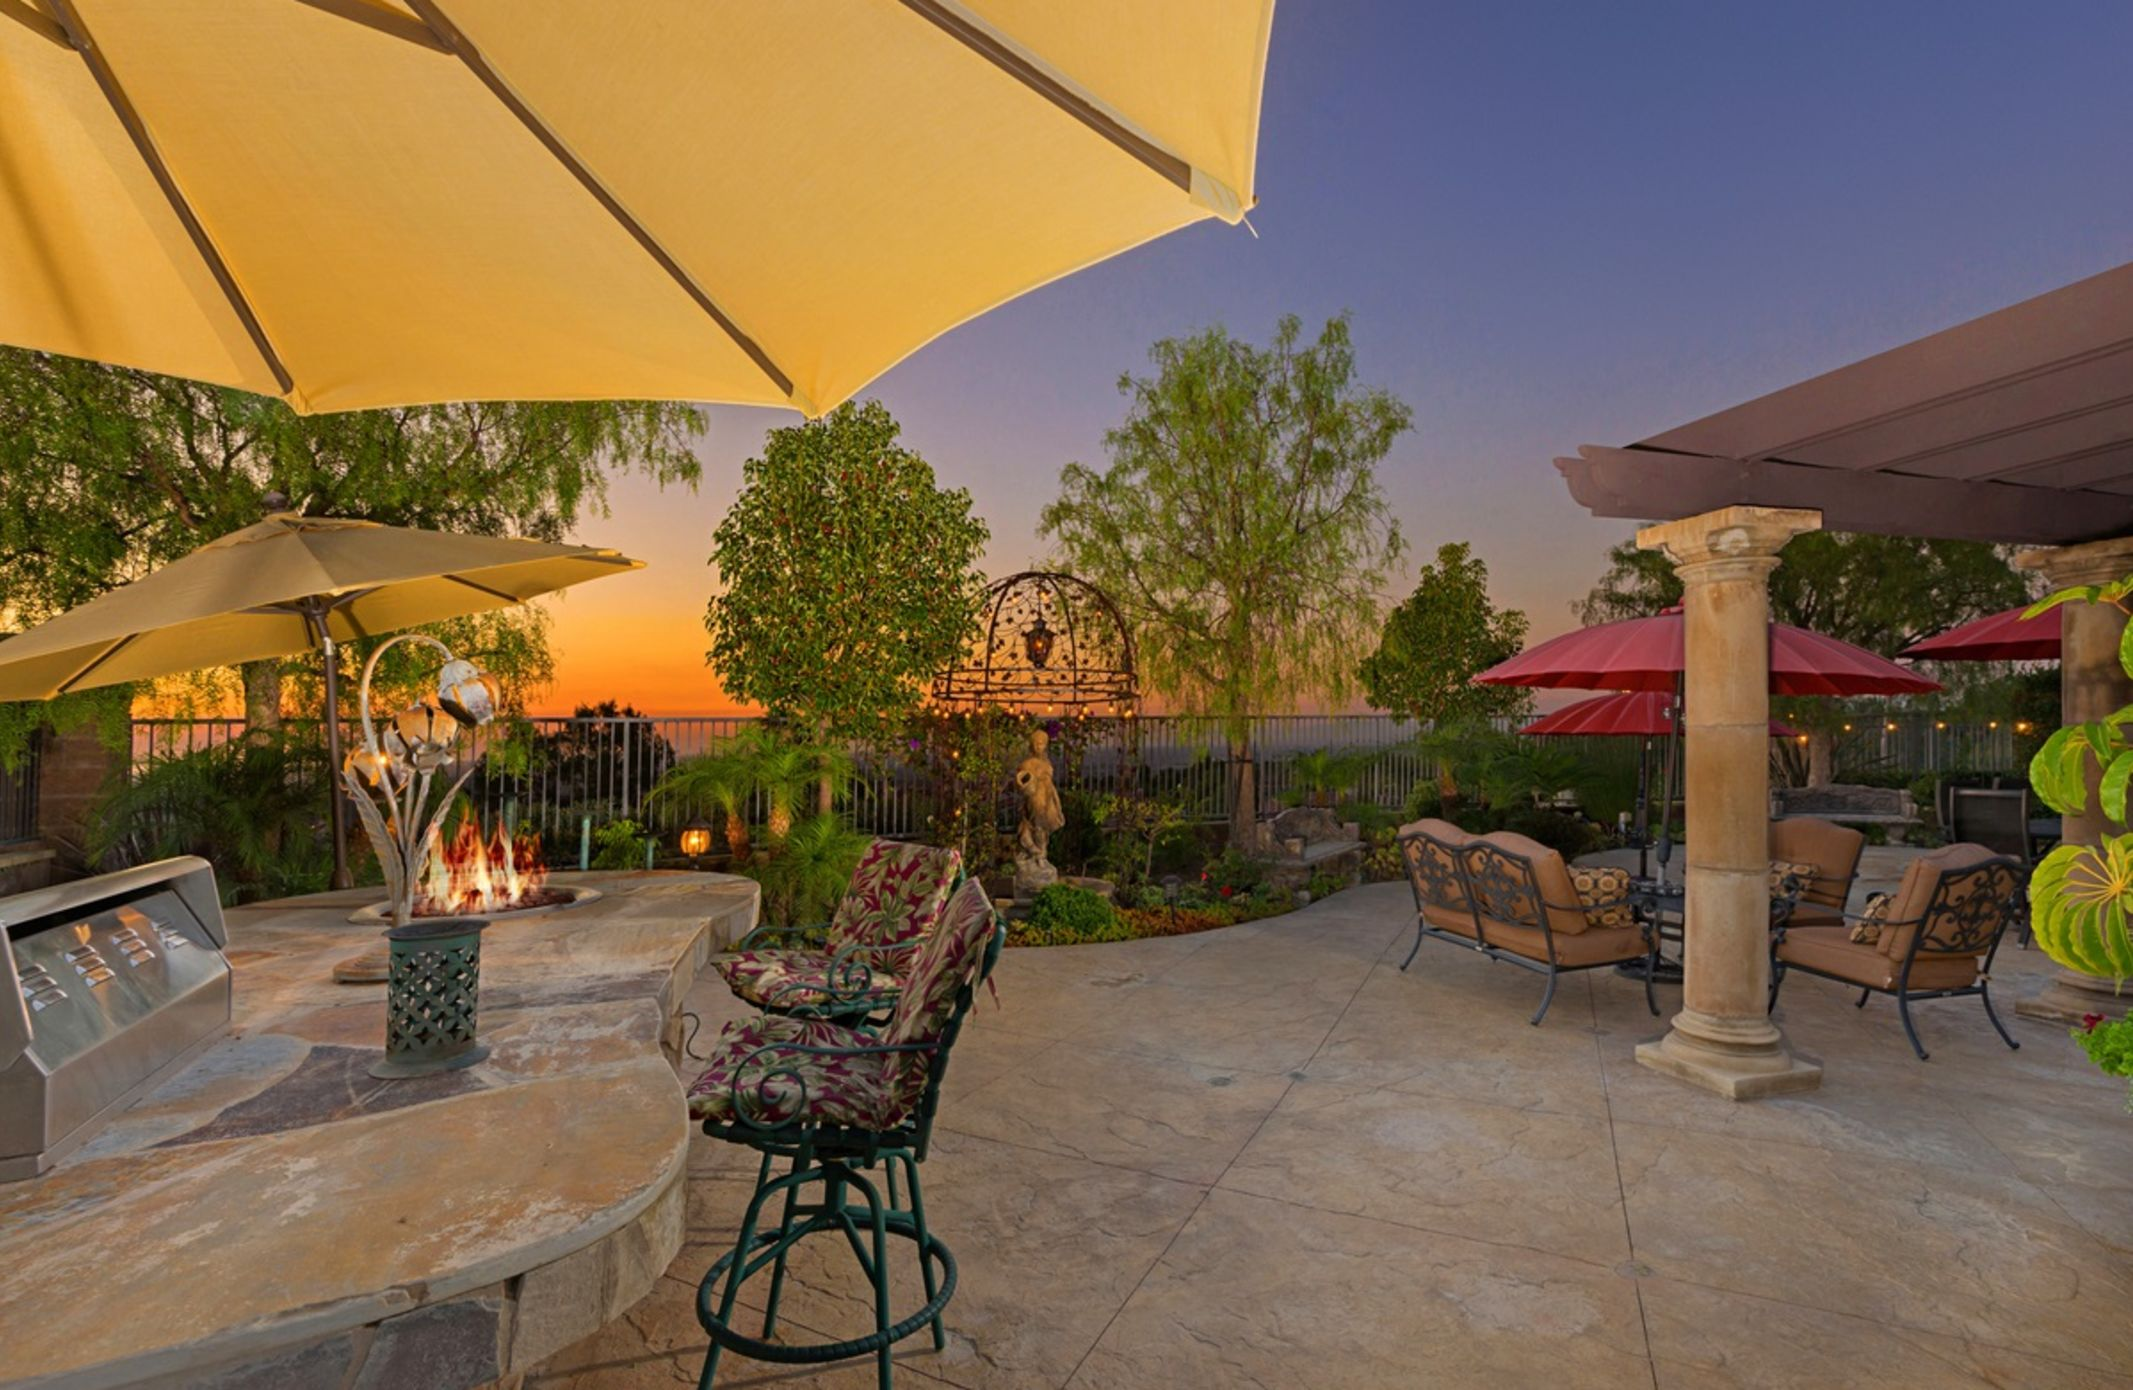 49 Hidden Trail  Prestigious Turtle Ridge Irvine With Forever Views! - Backyard Evening Views